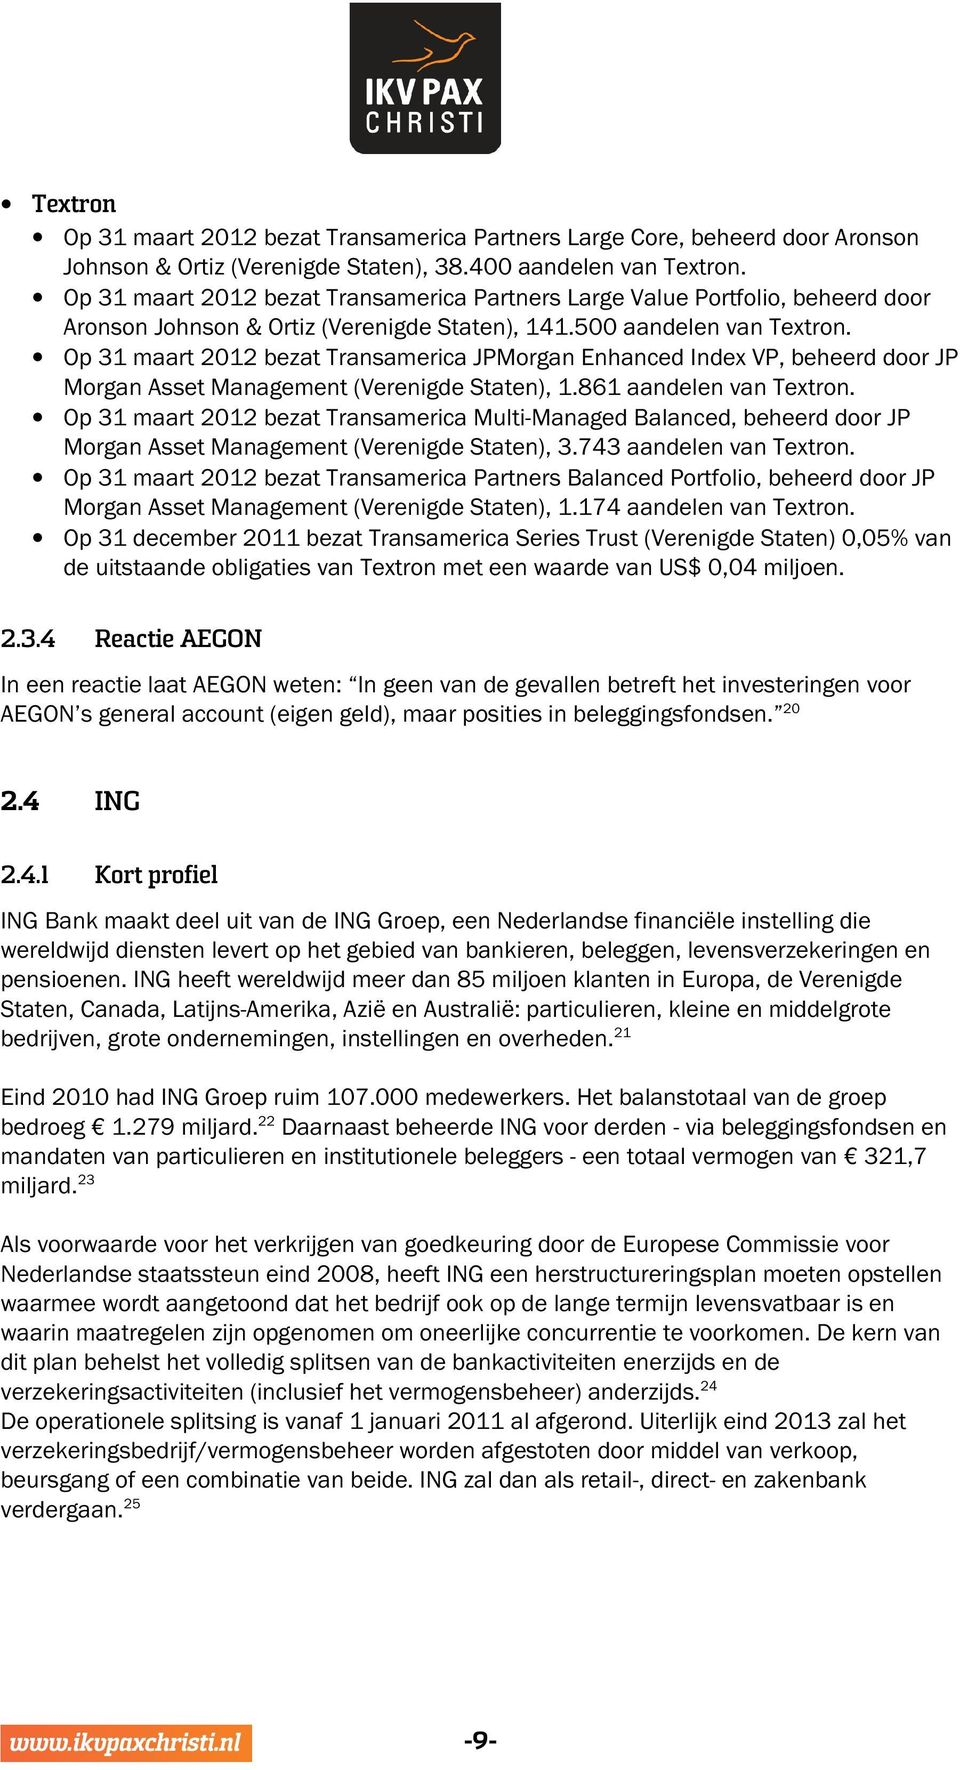 Op 31 maart 2012 bezat Transamerica JPMorgan Enhanced Index VP, beheerd door JP Morgan Asset Management (Verenigde Staten), 1.861 aandelen van Textron.